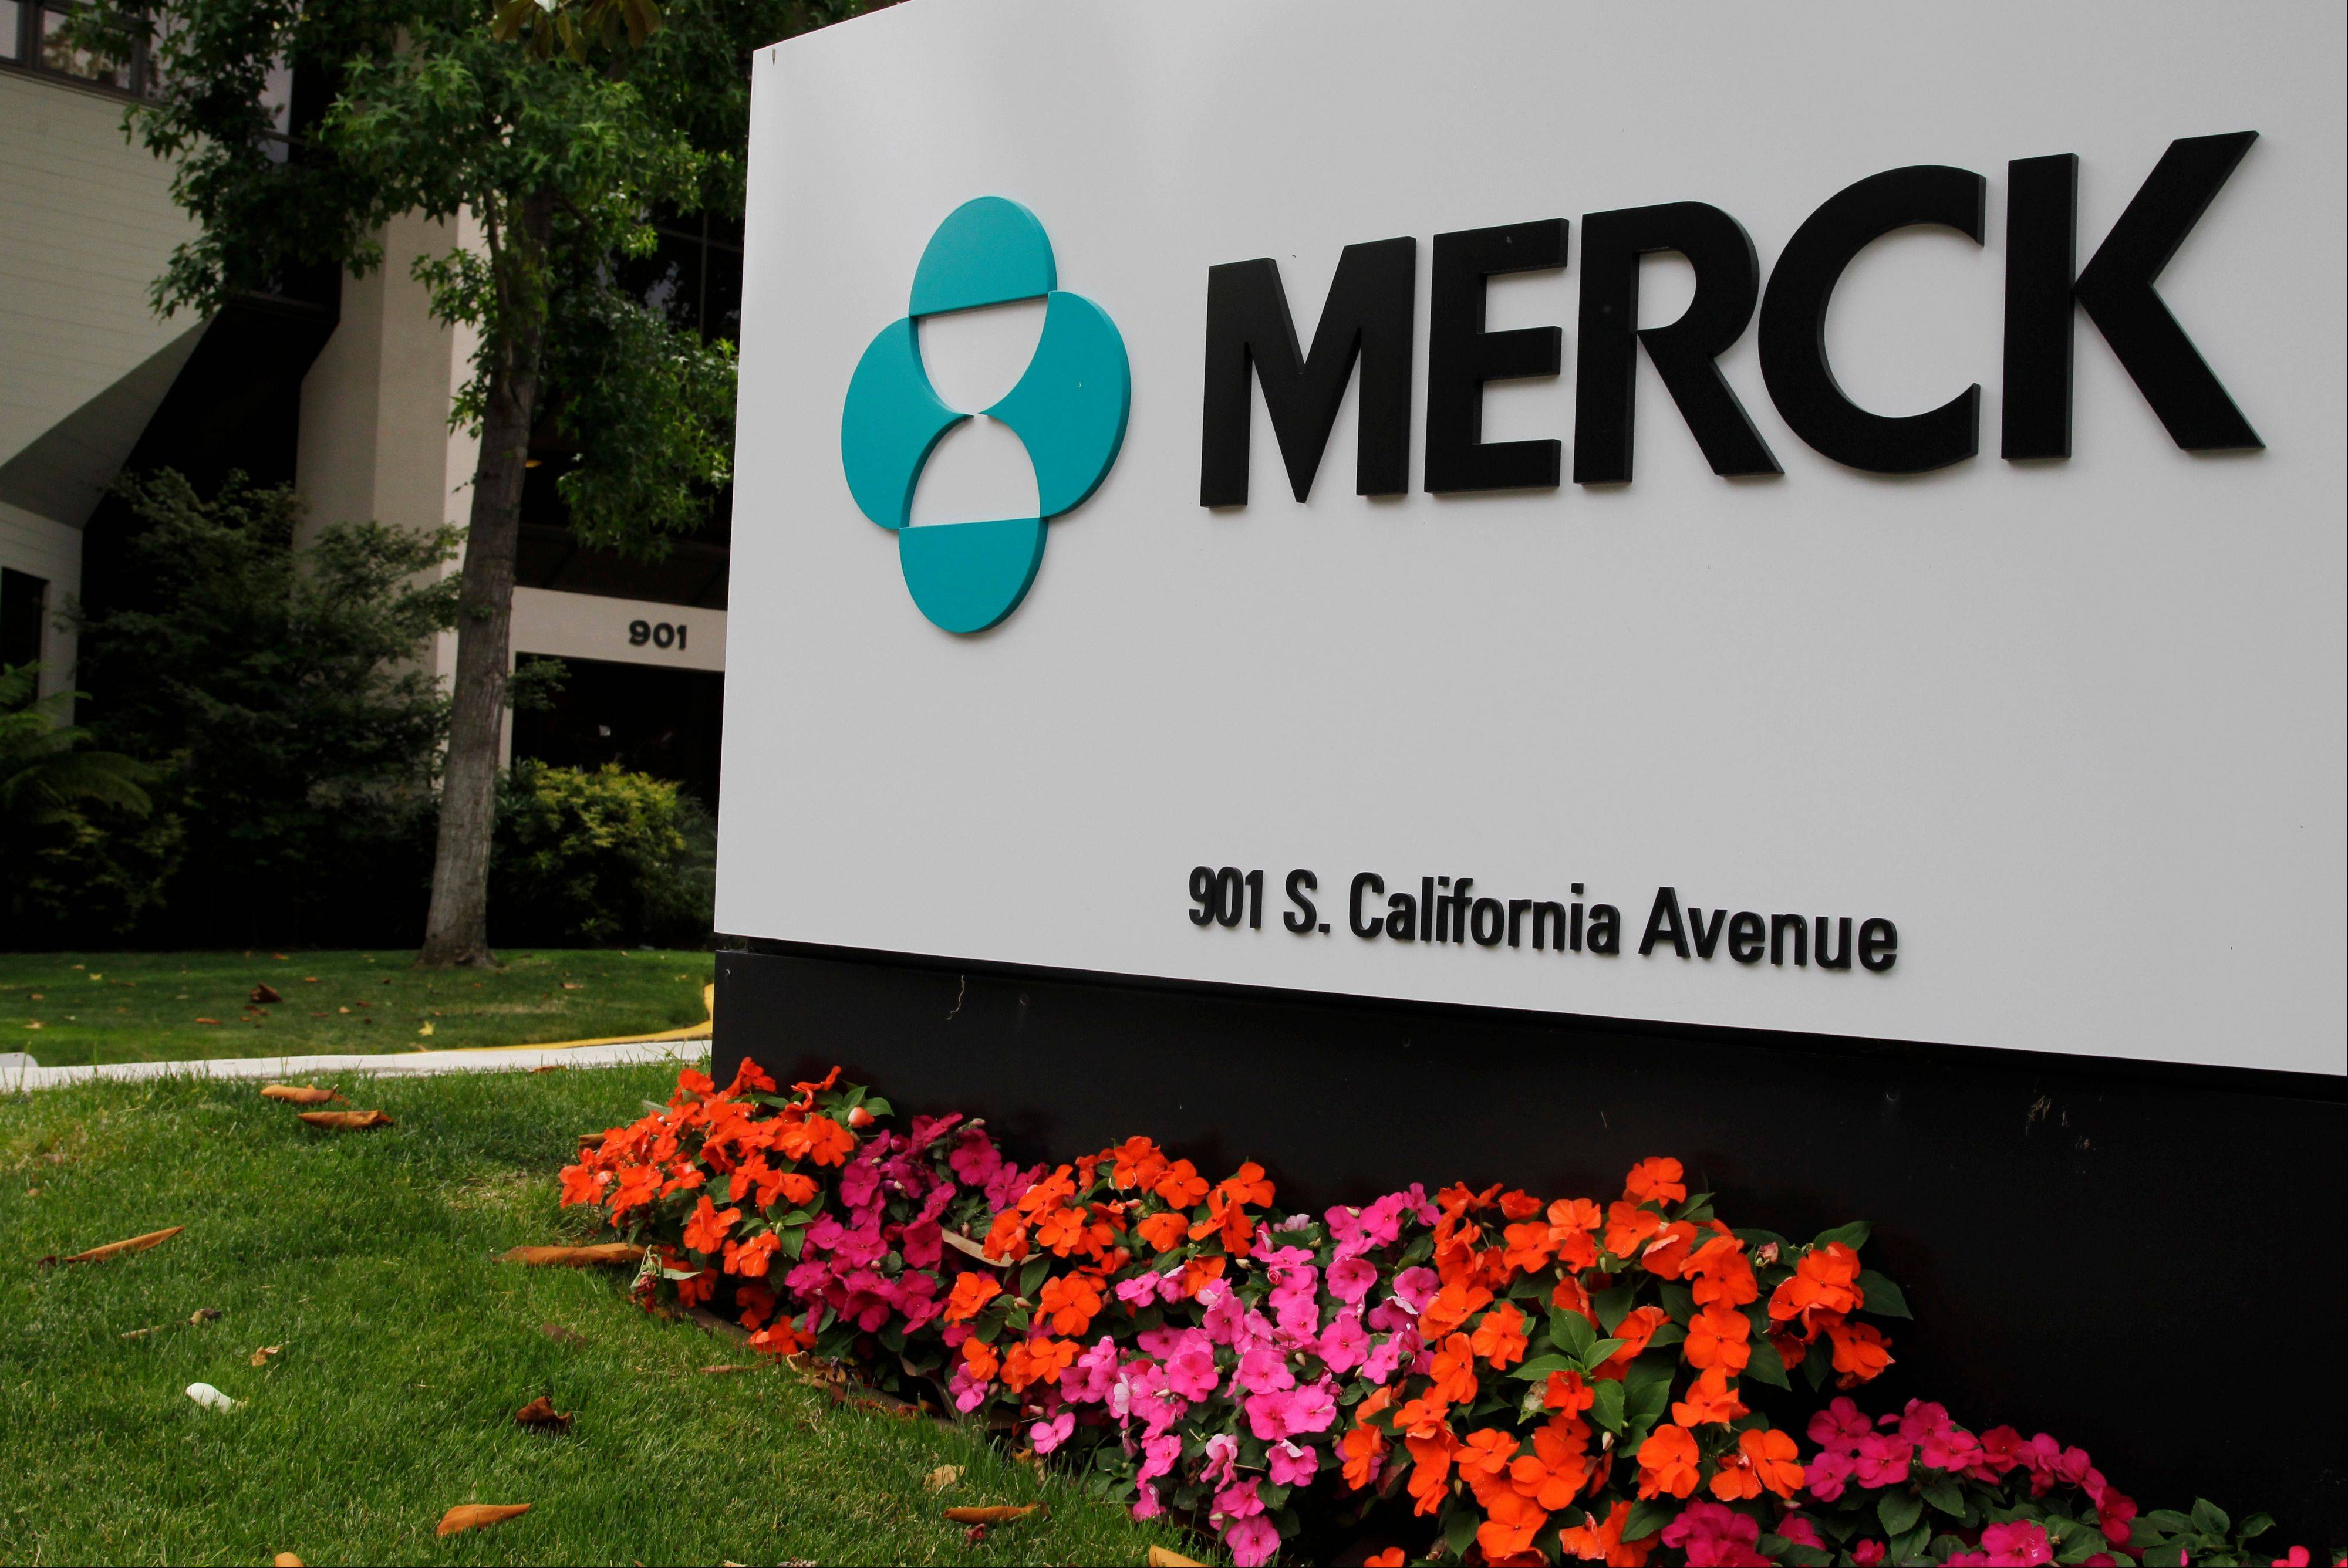 Drugmaker Merck & Co. said Friday, Oct. 26, 2012 that third-quarter profit rose 2 percent as reduced spending on overhead offset lower sales due to new generic competition for its top-selling drug. The company beat Wall Street�s profit expectations and narrowed its 2012 profit forecast, to a range of $2.08 to $2.24 per share, from its July forecast of $2.04 to $2.30.